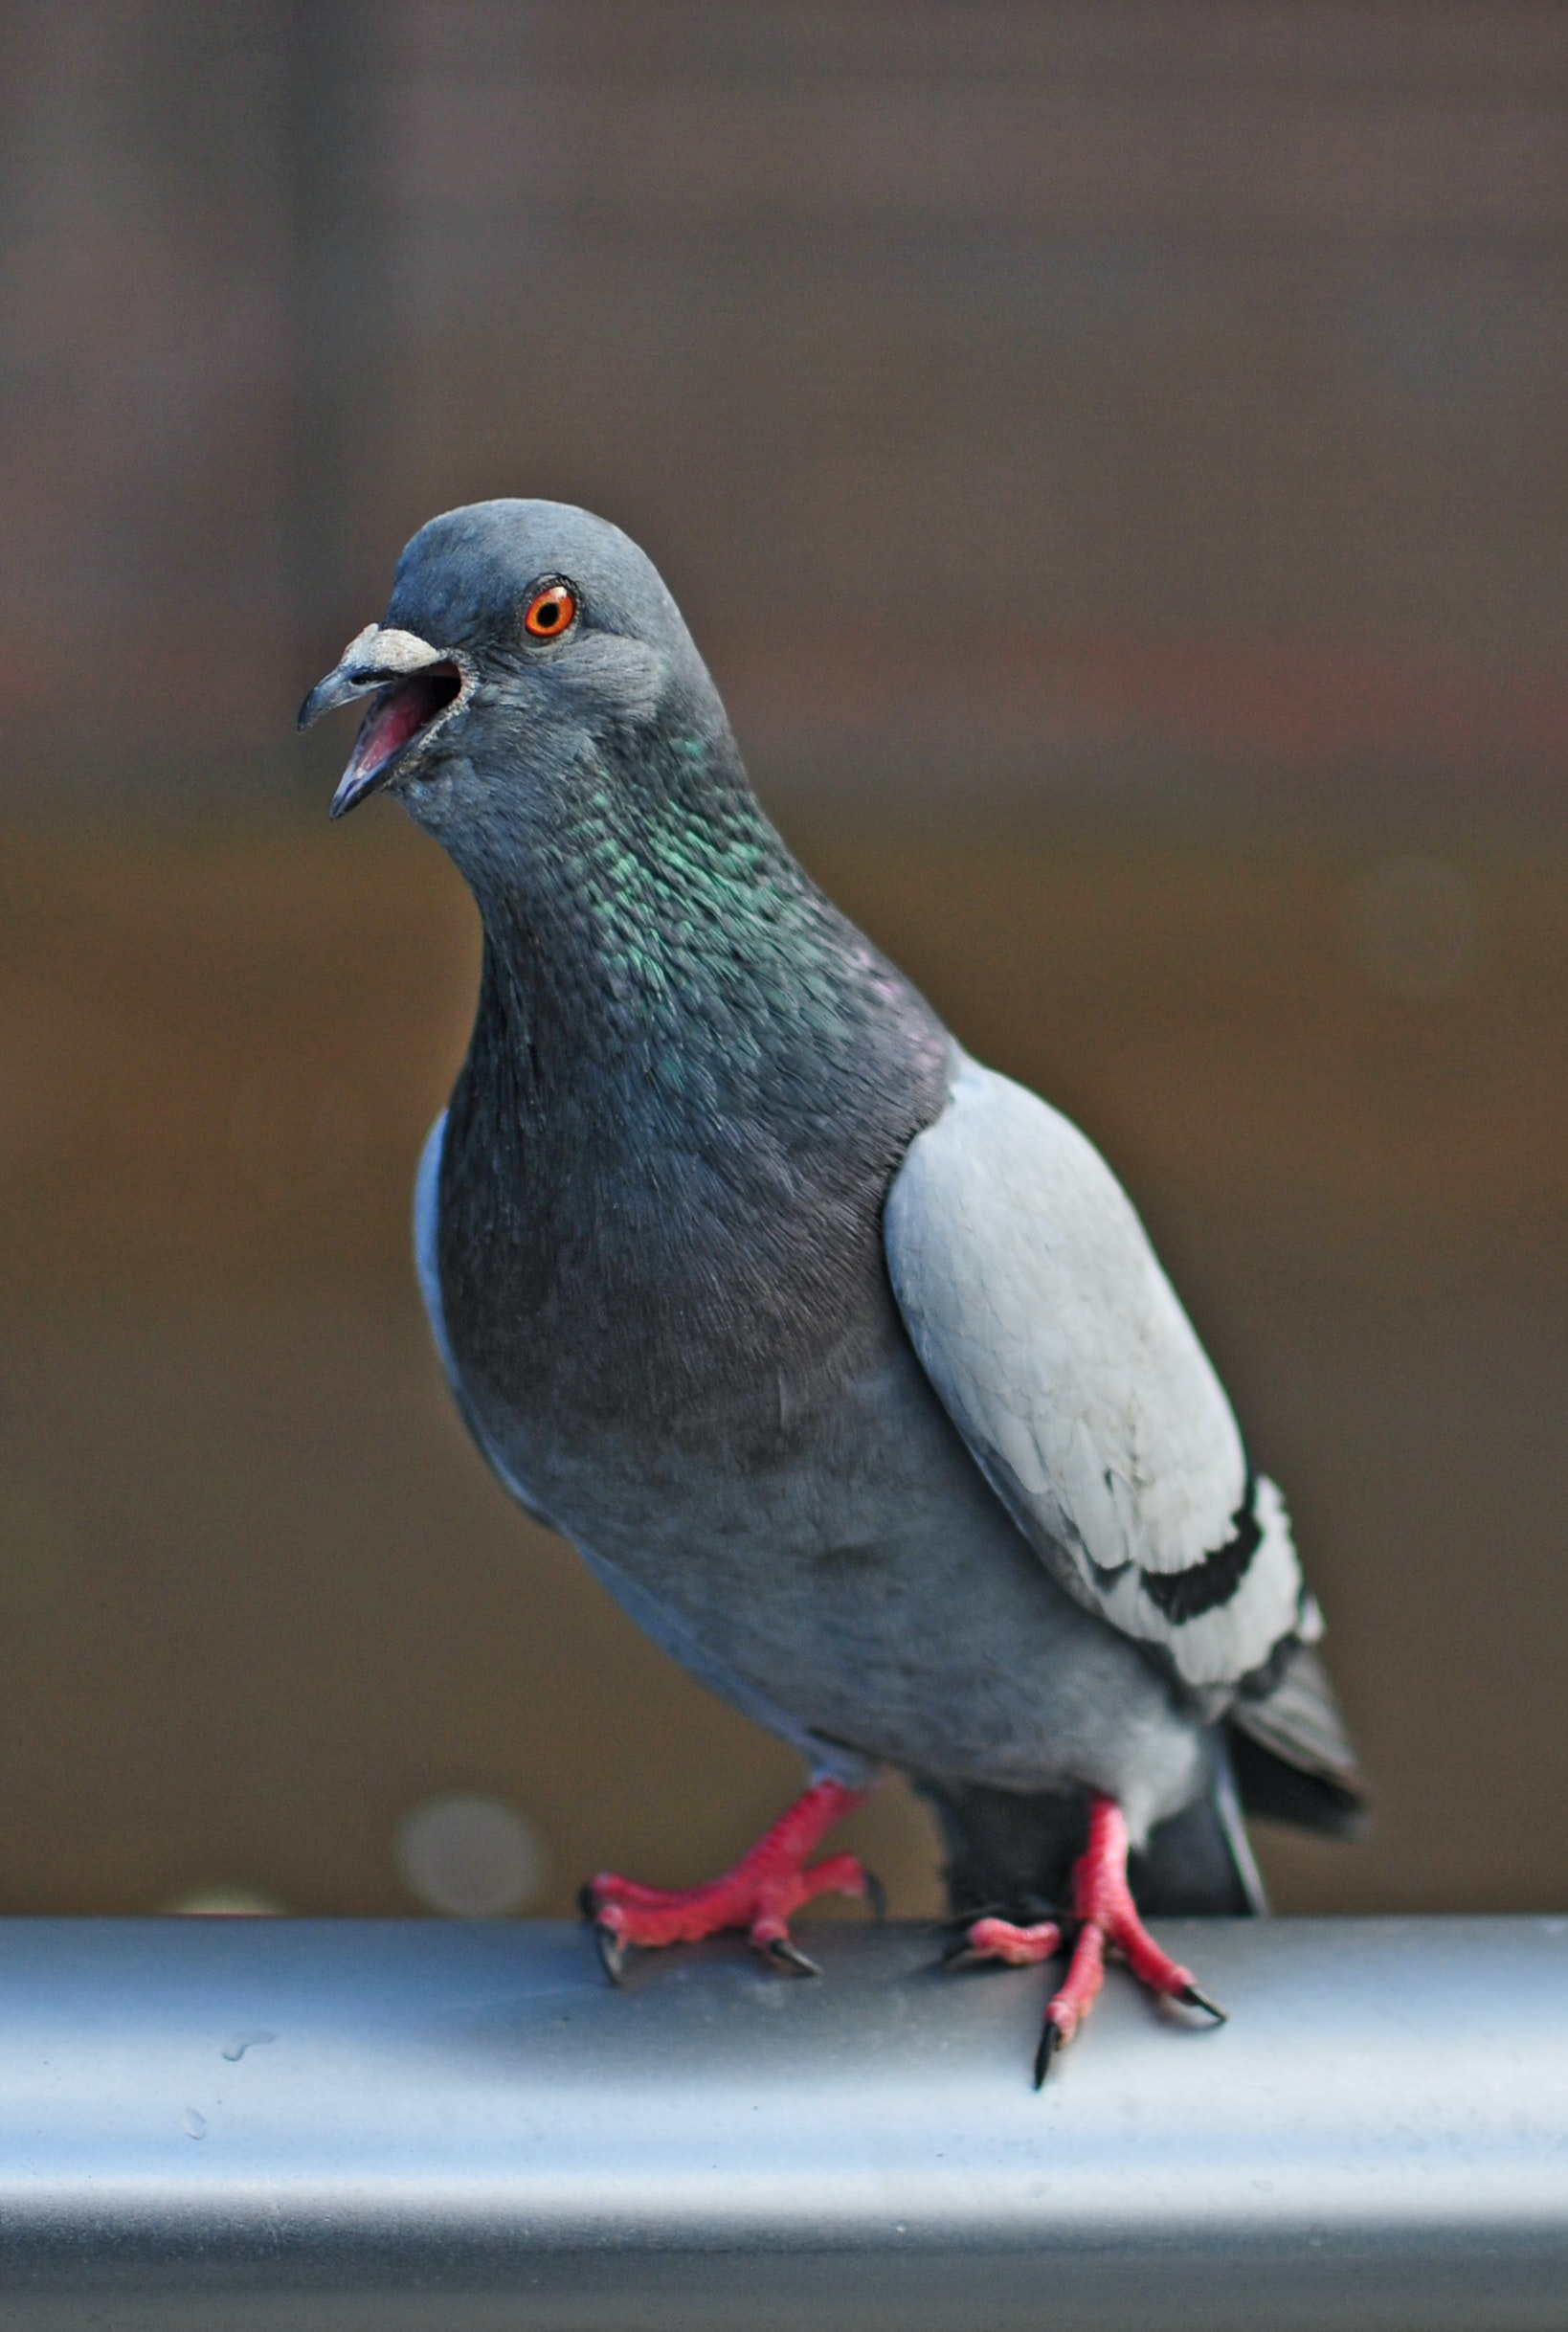 grey pigeon on grey metal rod